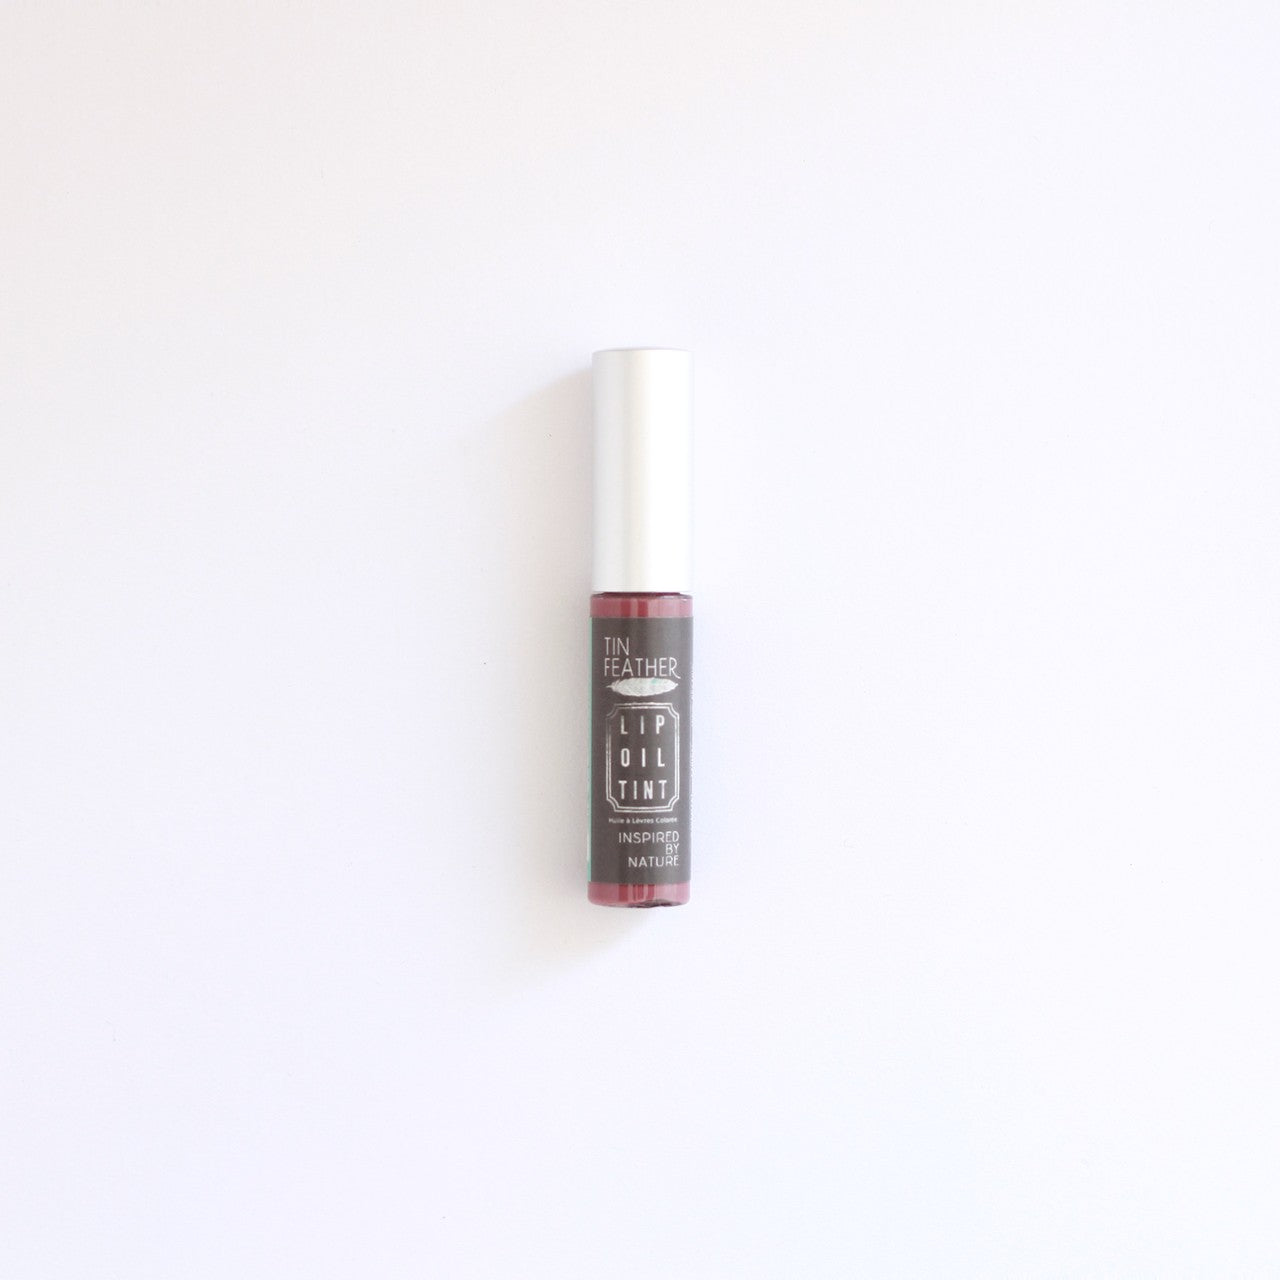 Tin Feather Lip Oil Tint - Radiant